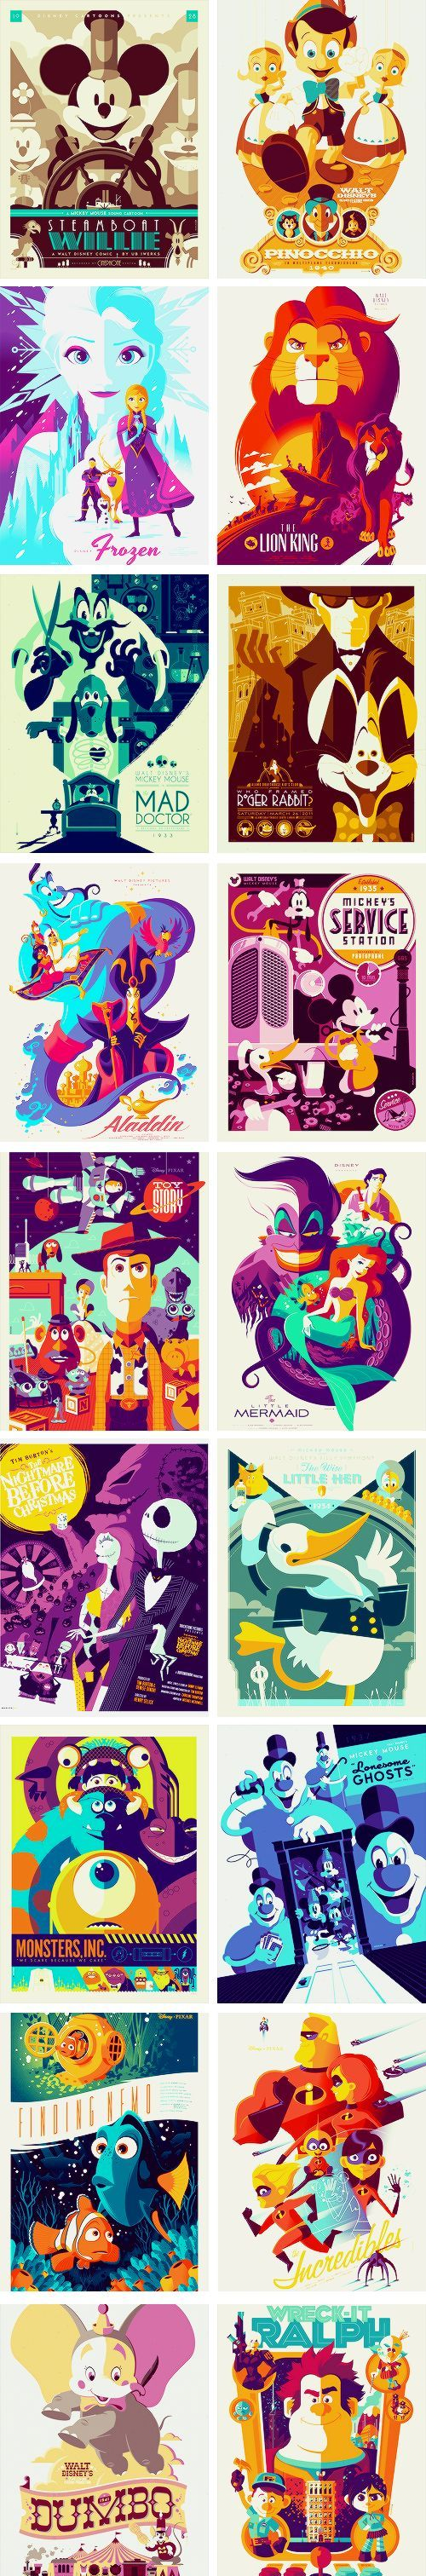 Disney posters by Tom Whalen - Lion King, Aladdin, NBC, Toy Story, Monsters, Inc, Lil Mermaid, Finding Nemo